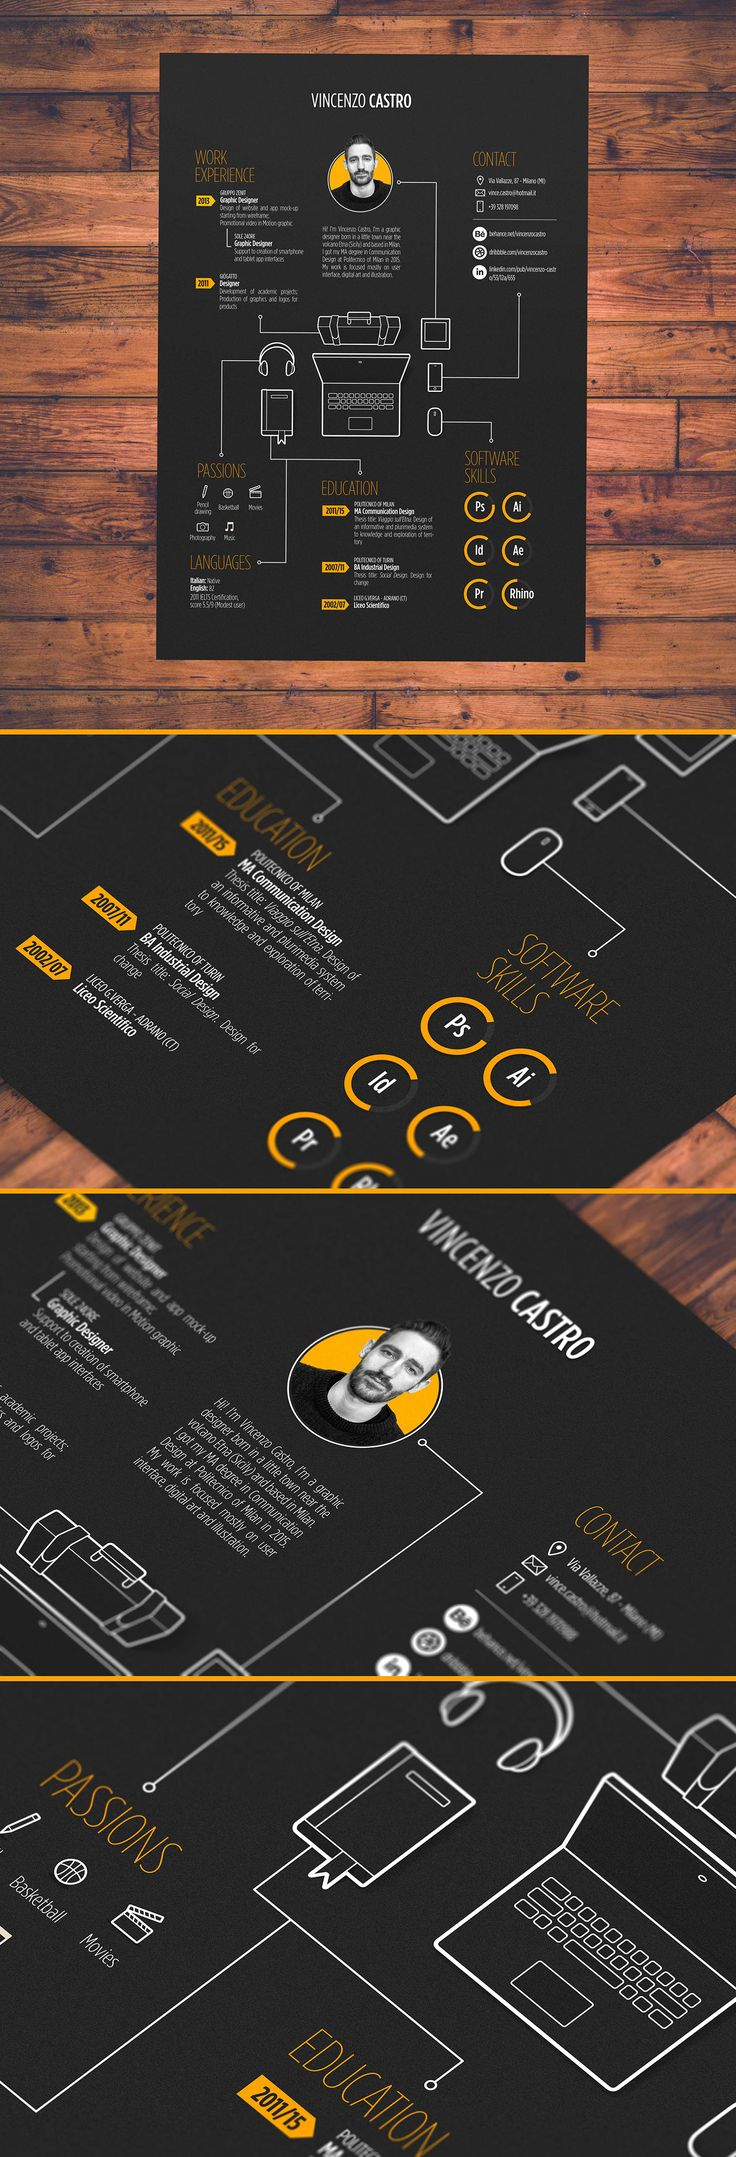 best ideas about graphic designer resume resume vincenzo castro graphic designer self promotion like the approach of a art designed cv and the layout feels tidy and collected